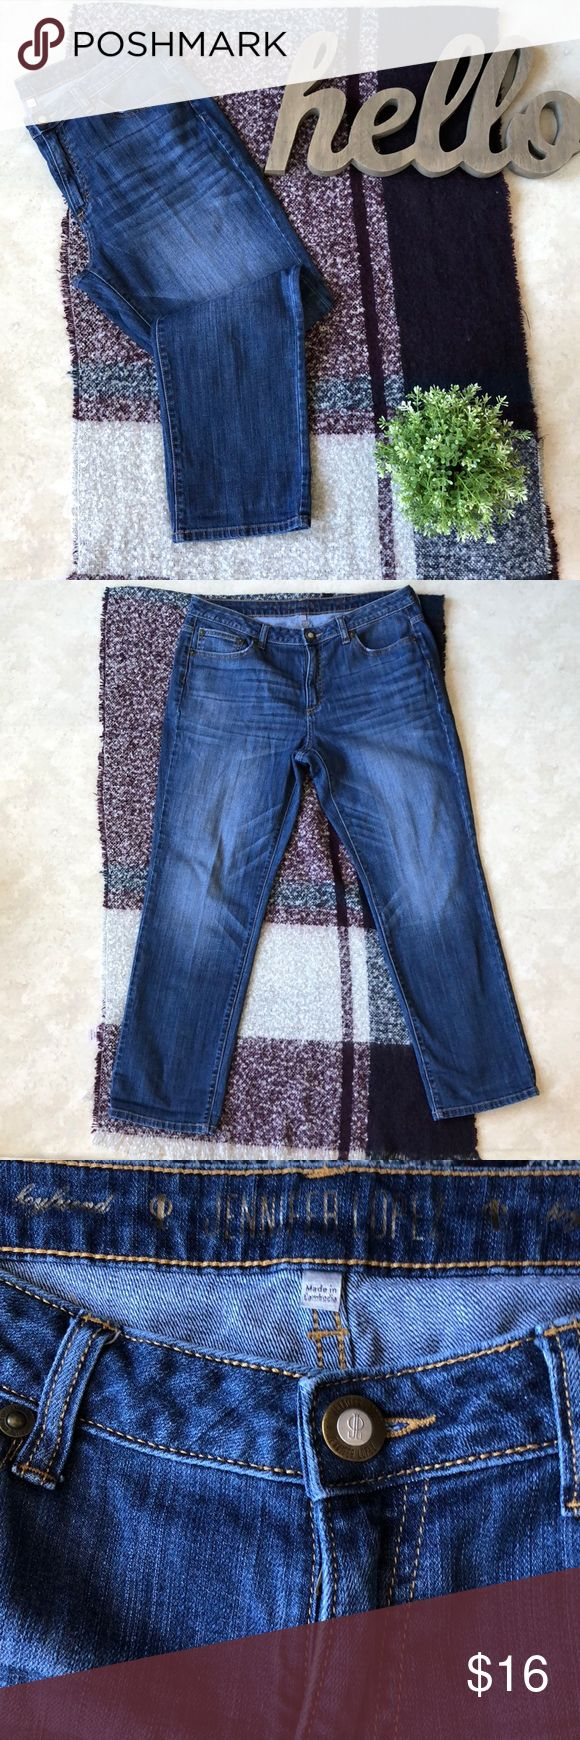 "Jennifer Lopez Boyfriend Straight Leg Jeans Jennifer Lopez Boyfriend Straight Leg Jeans With Distressing.  Inseam 29"" Great Condition Jennifer Lopez Jeans Straight Leg"